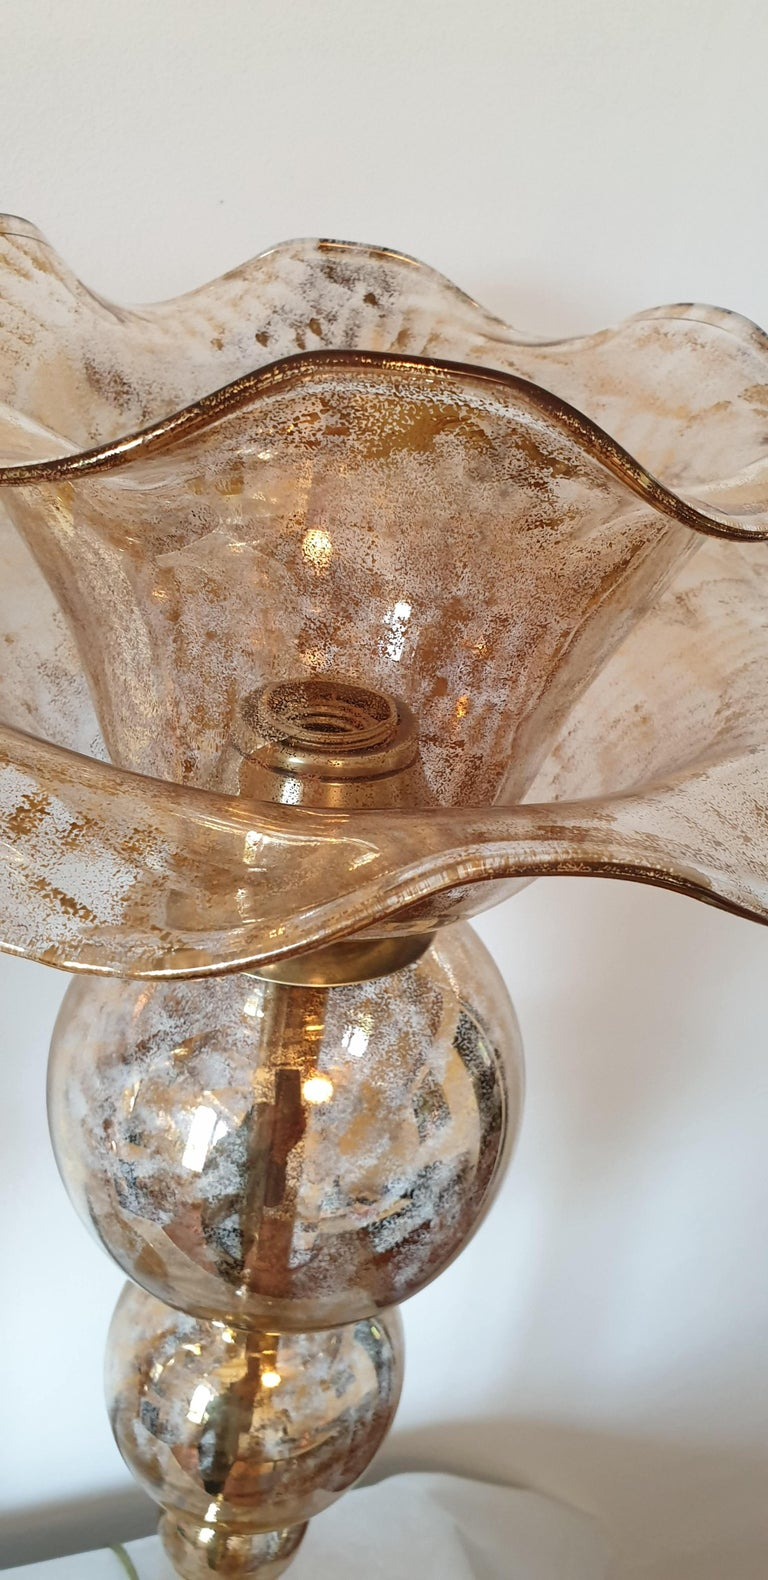 Pair of Mid-Century Modern Flower Murano Glass Table Lamps, Attributed to Seguso For Sale 2